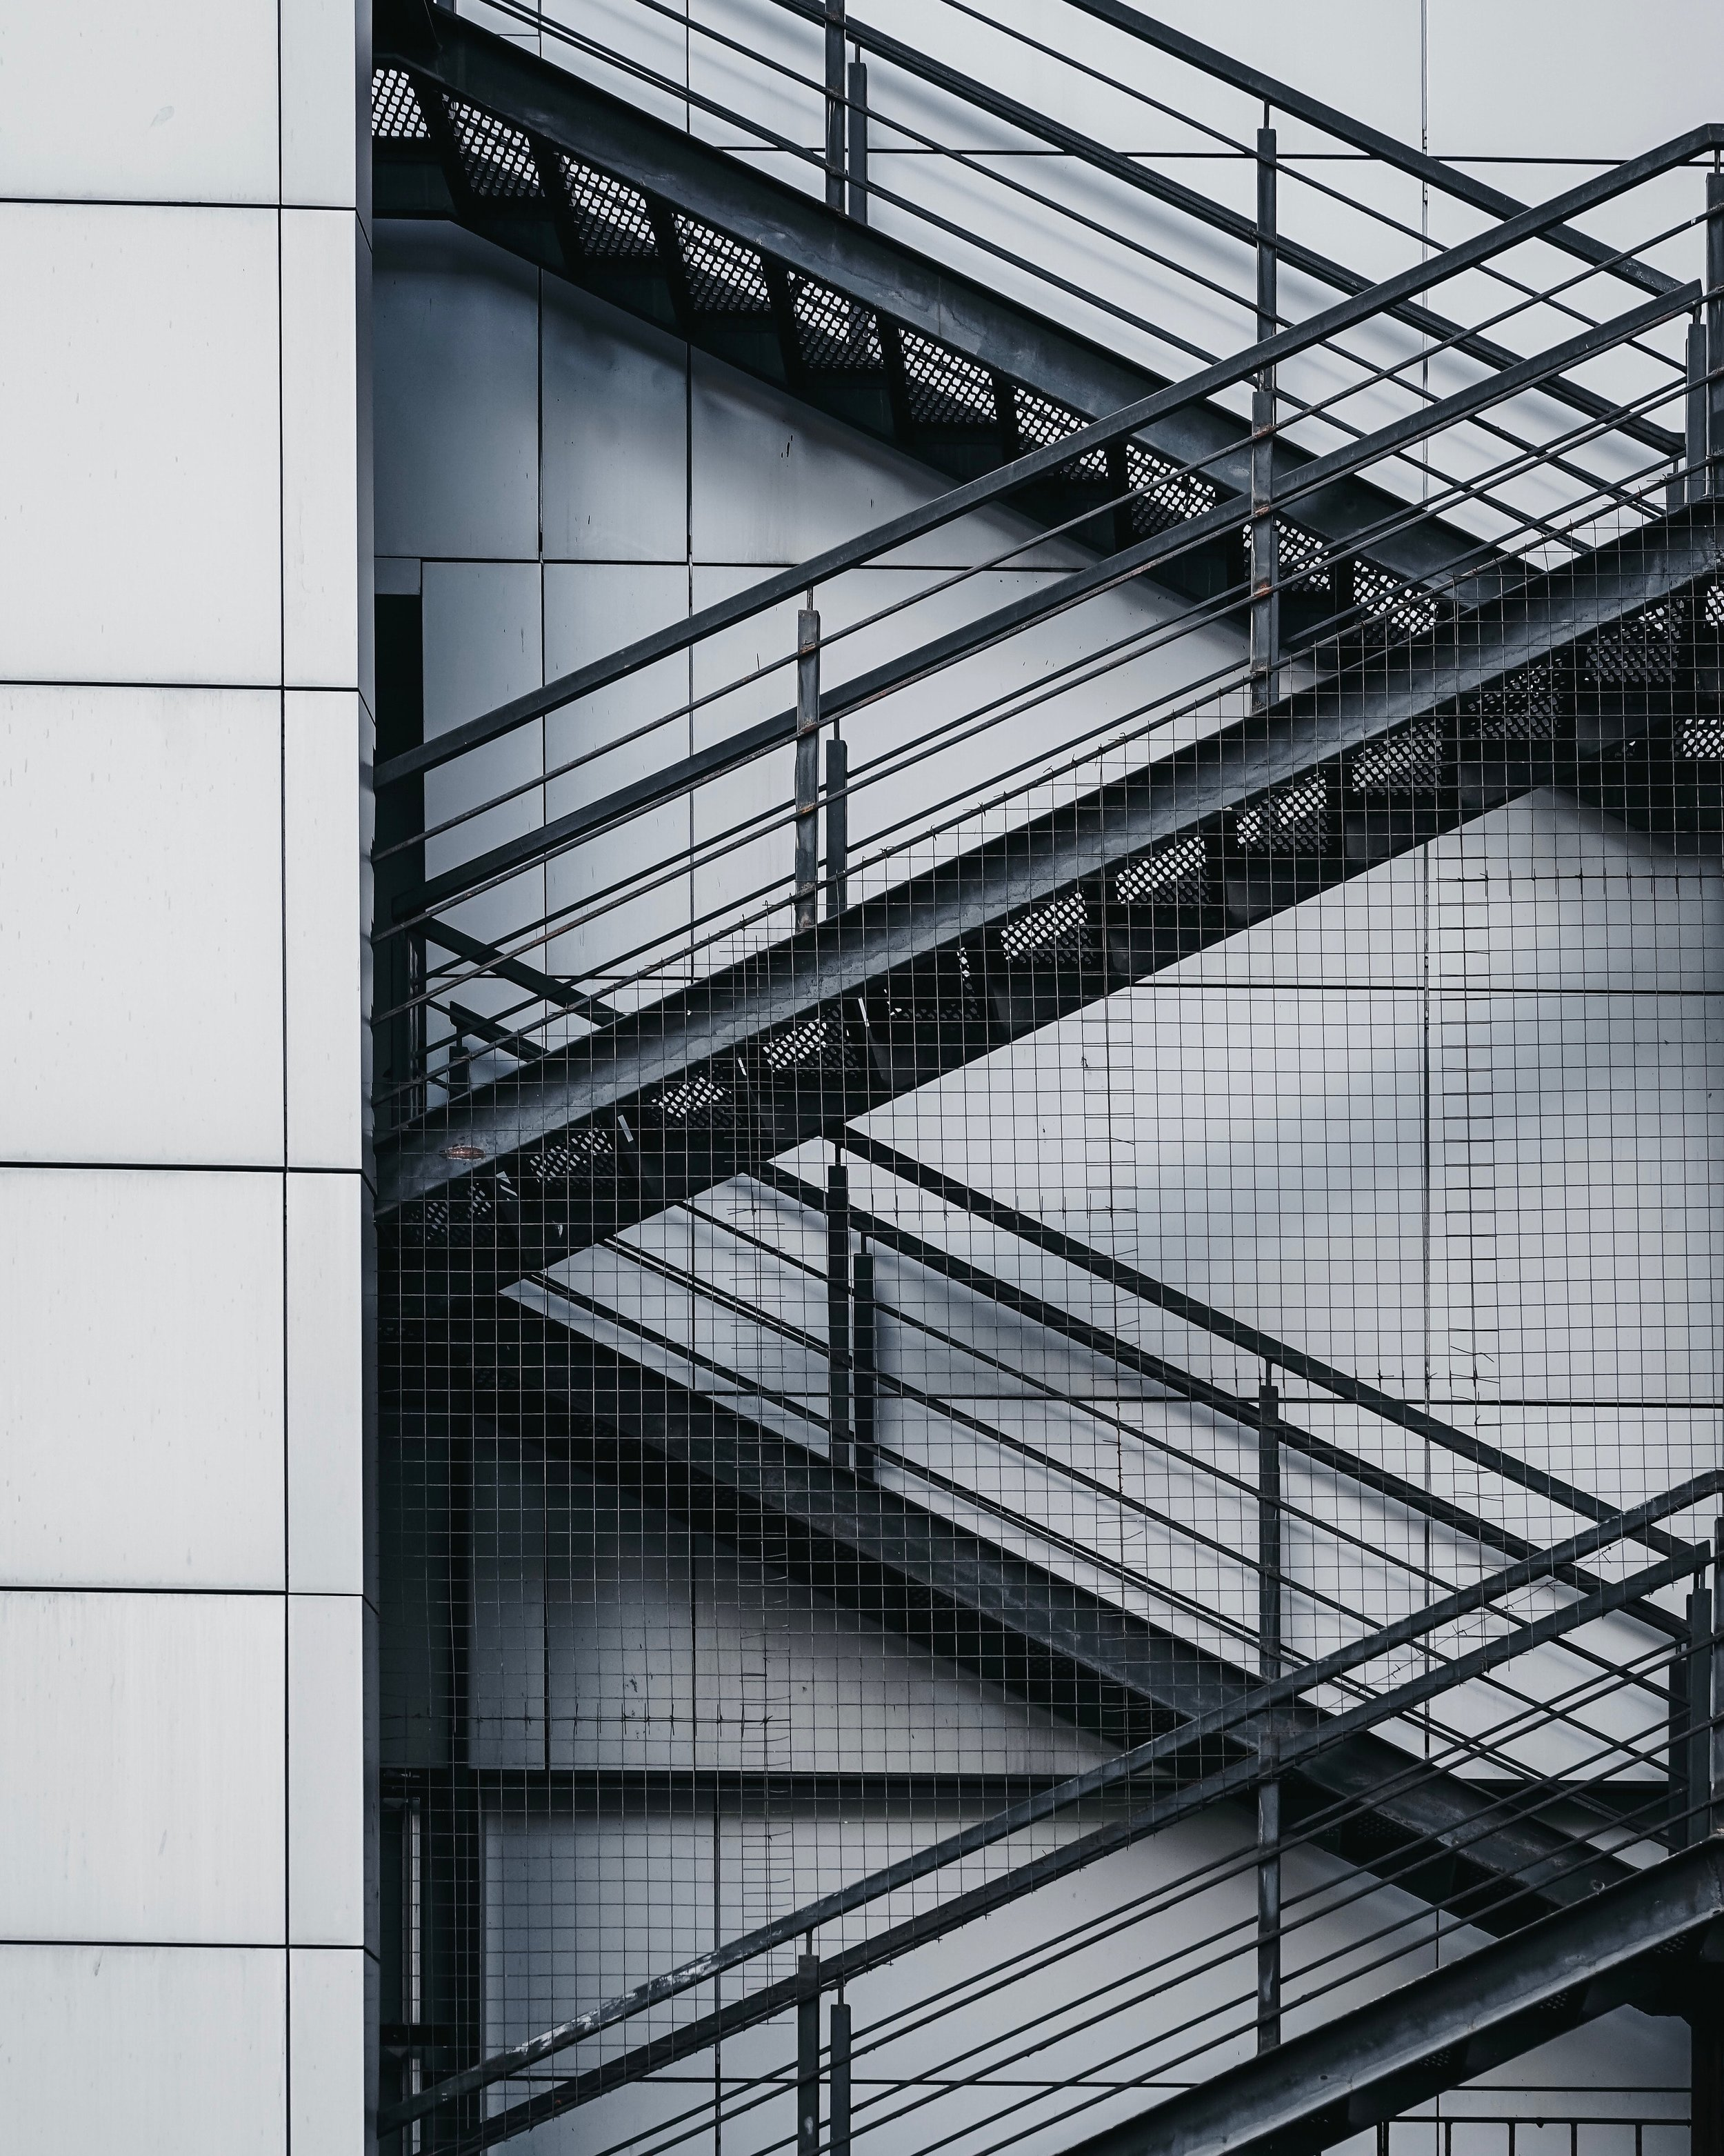 architecture-building-metal-stairs-2811368.jpg